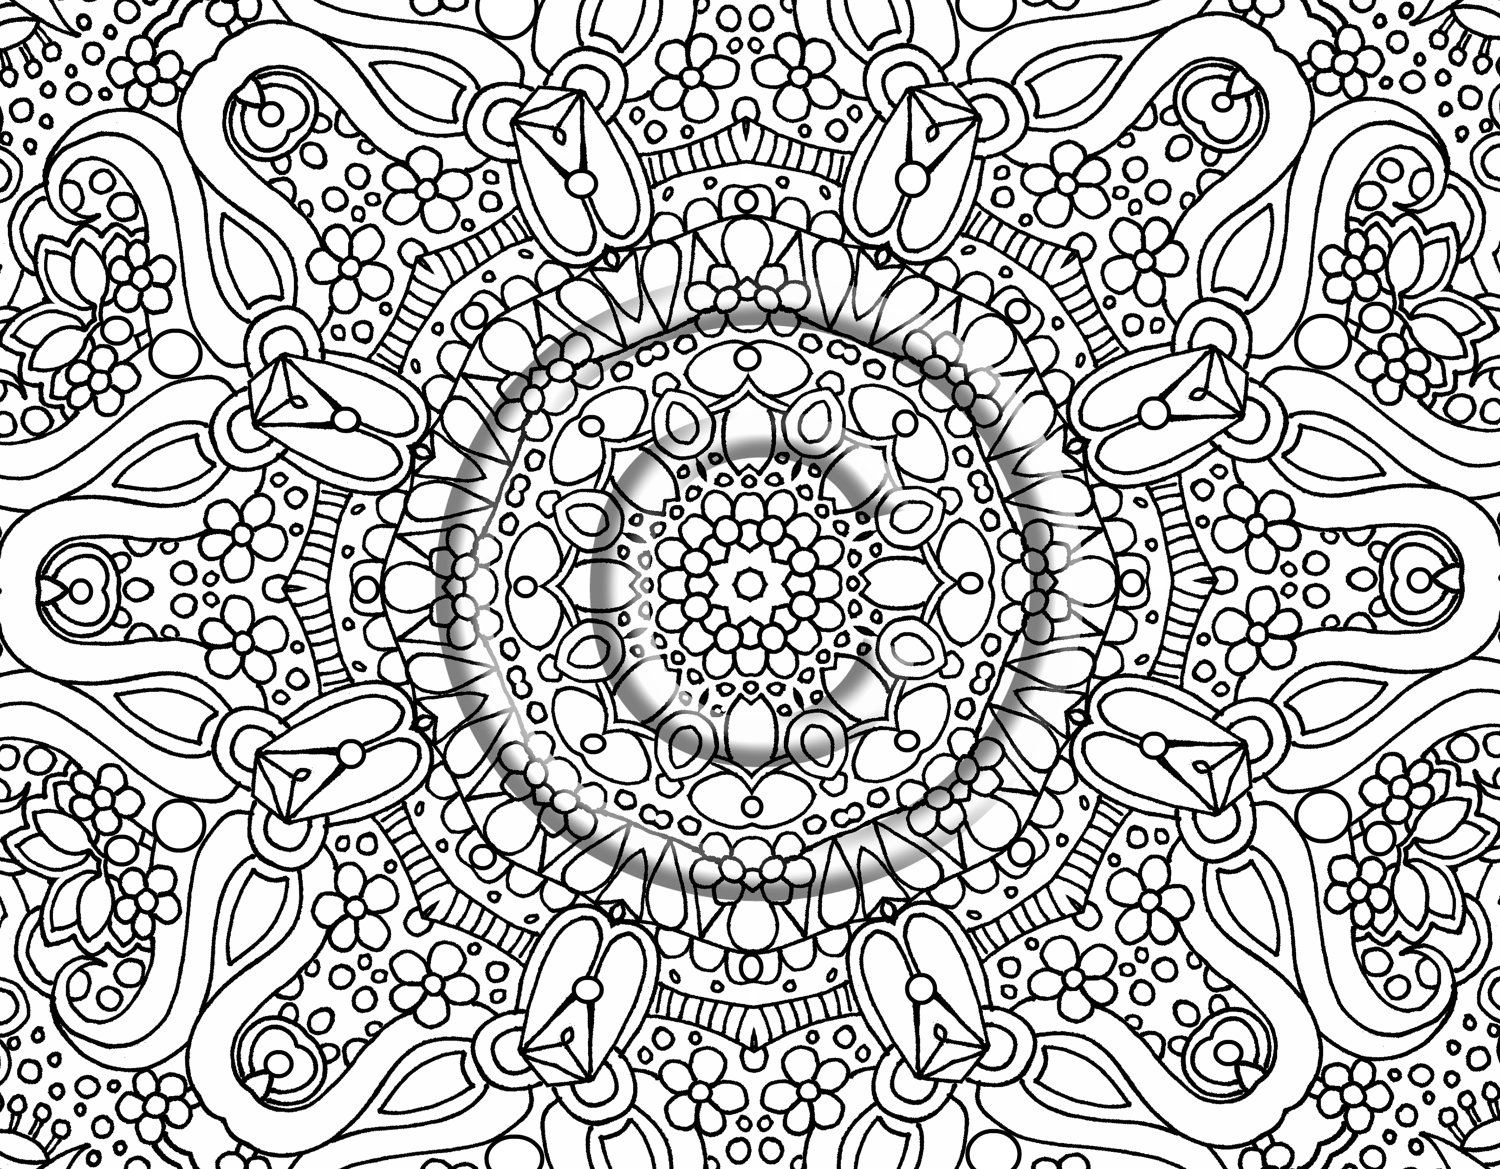 Free coloring pages for adults abstract - Hard Coloring Pages Hard Coloring Pages Free Adult Coloring Sheets